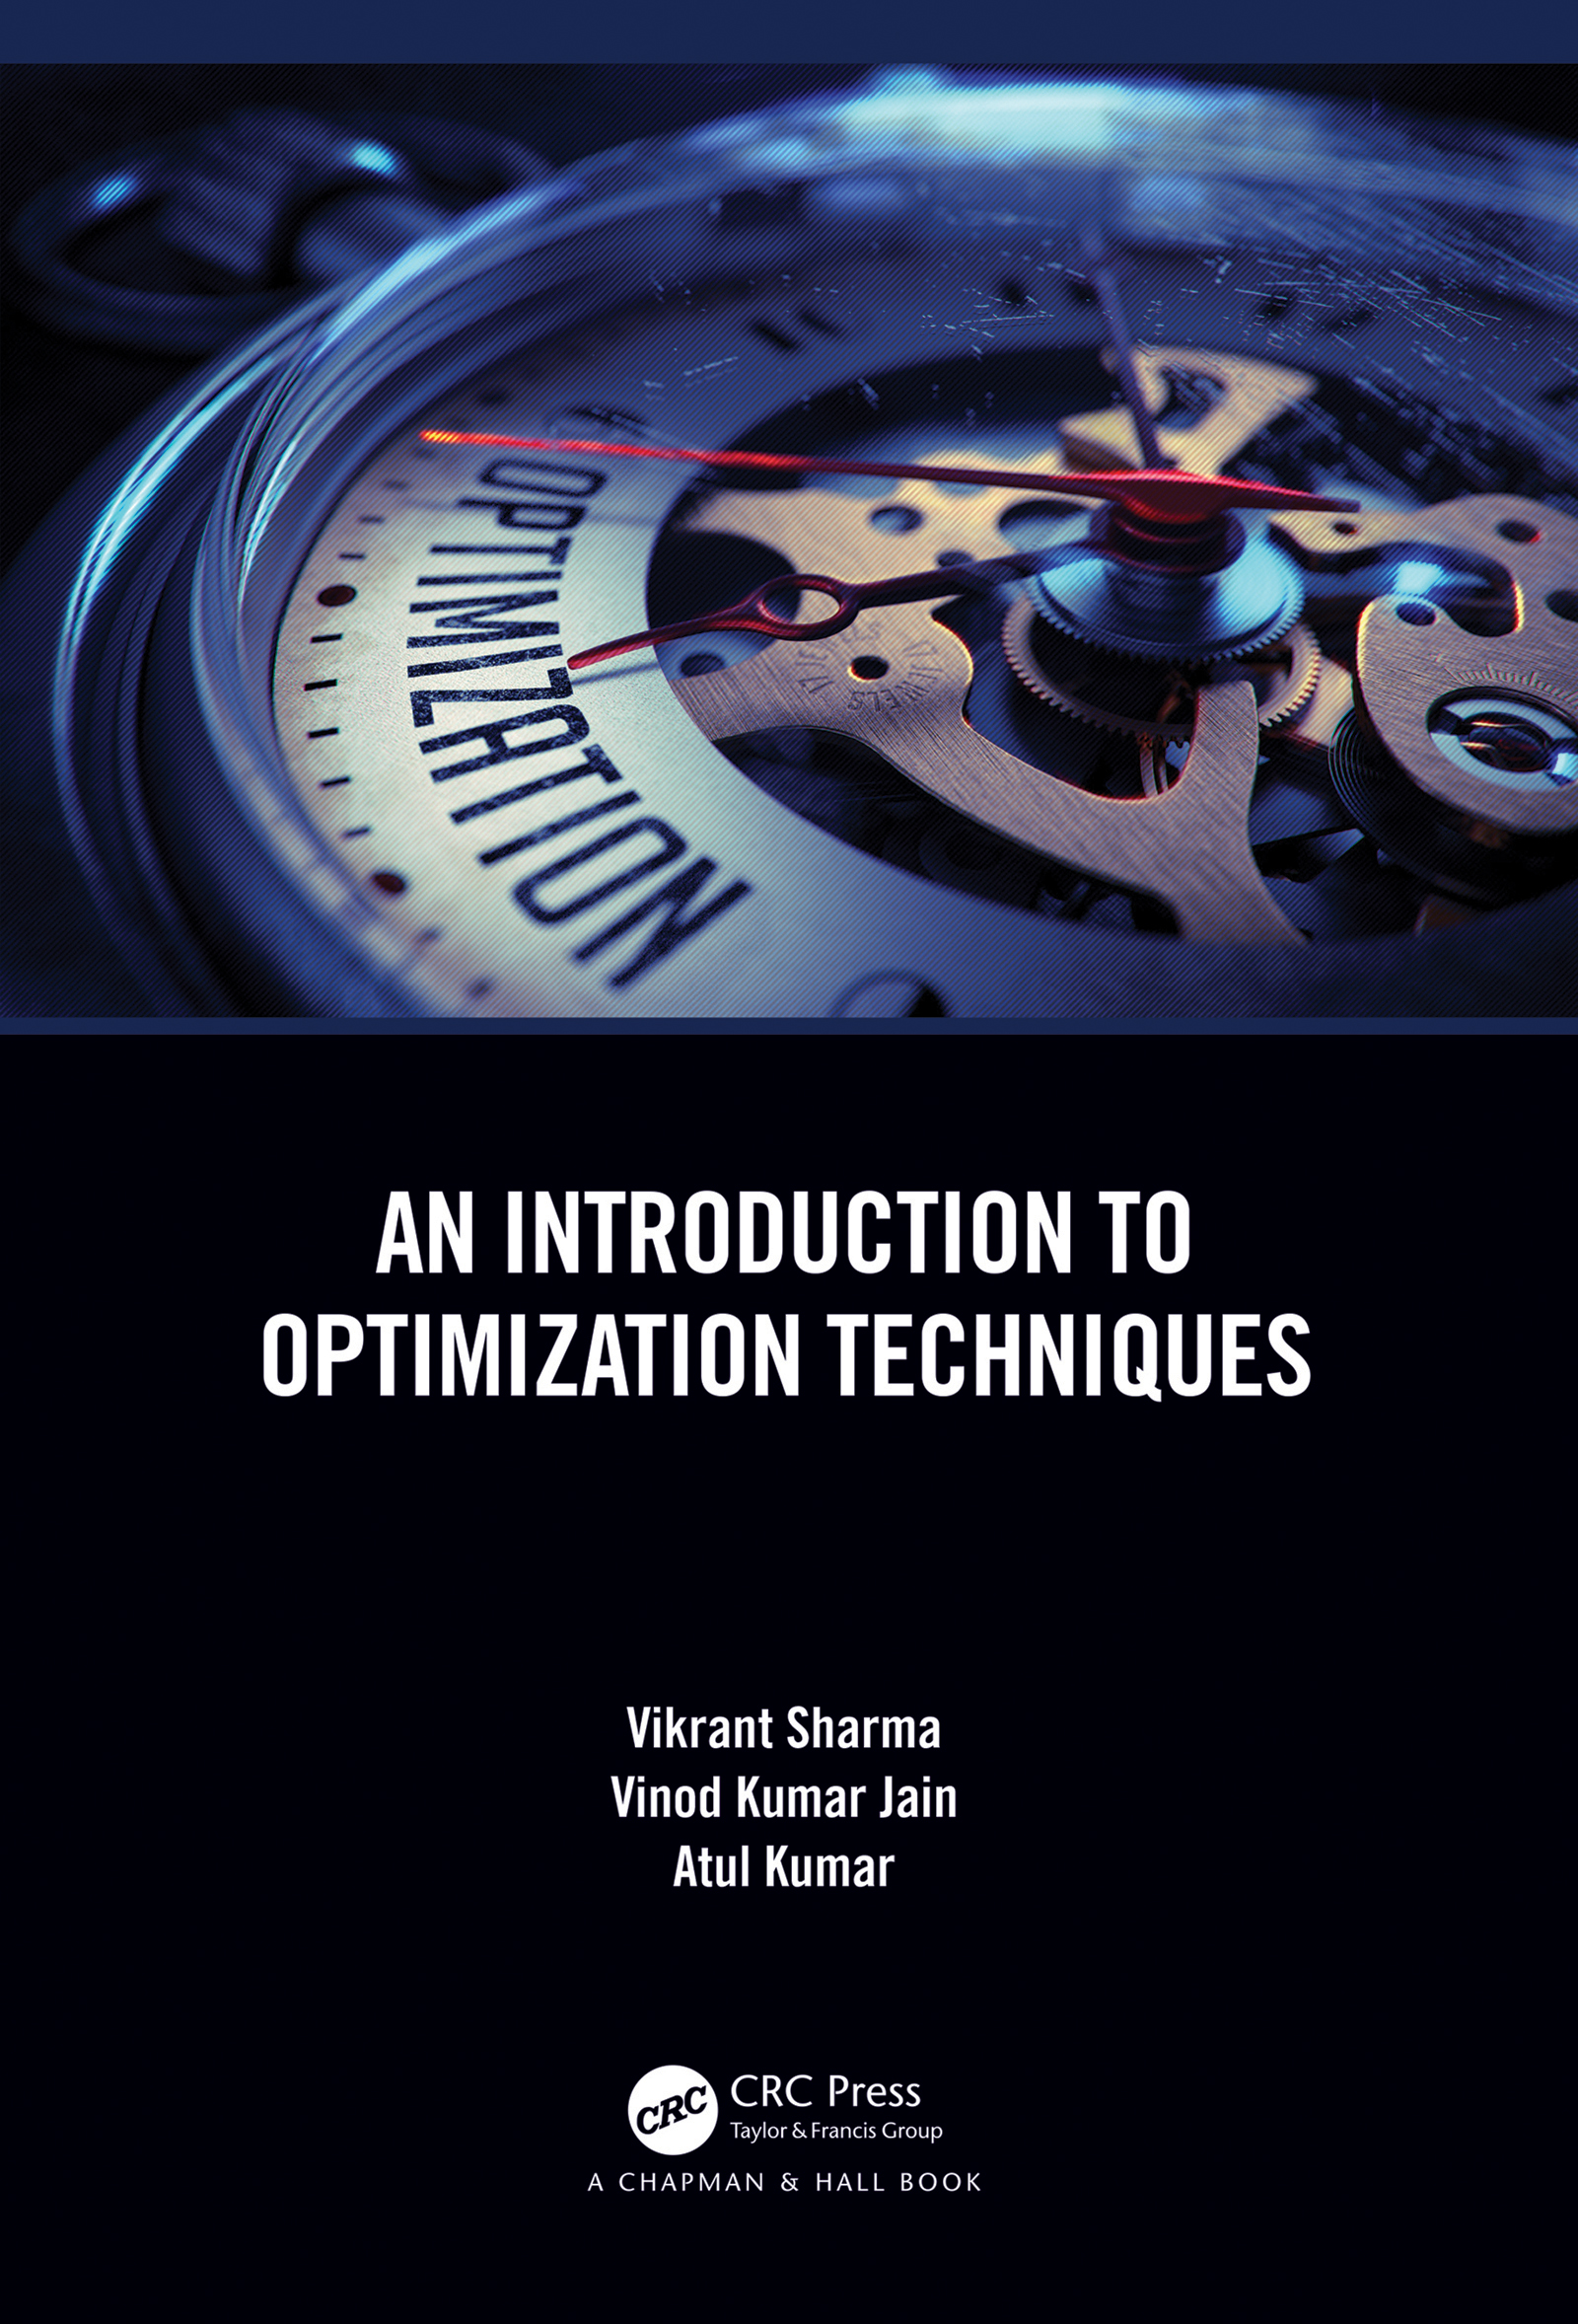 An Introduction to Optimization Techniques